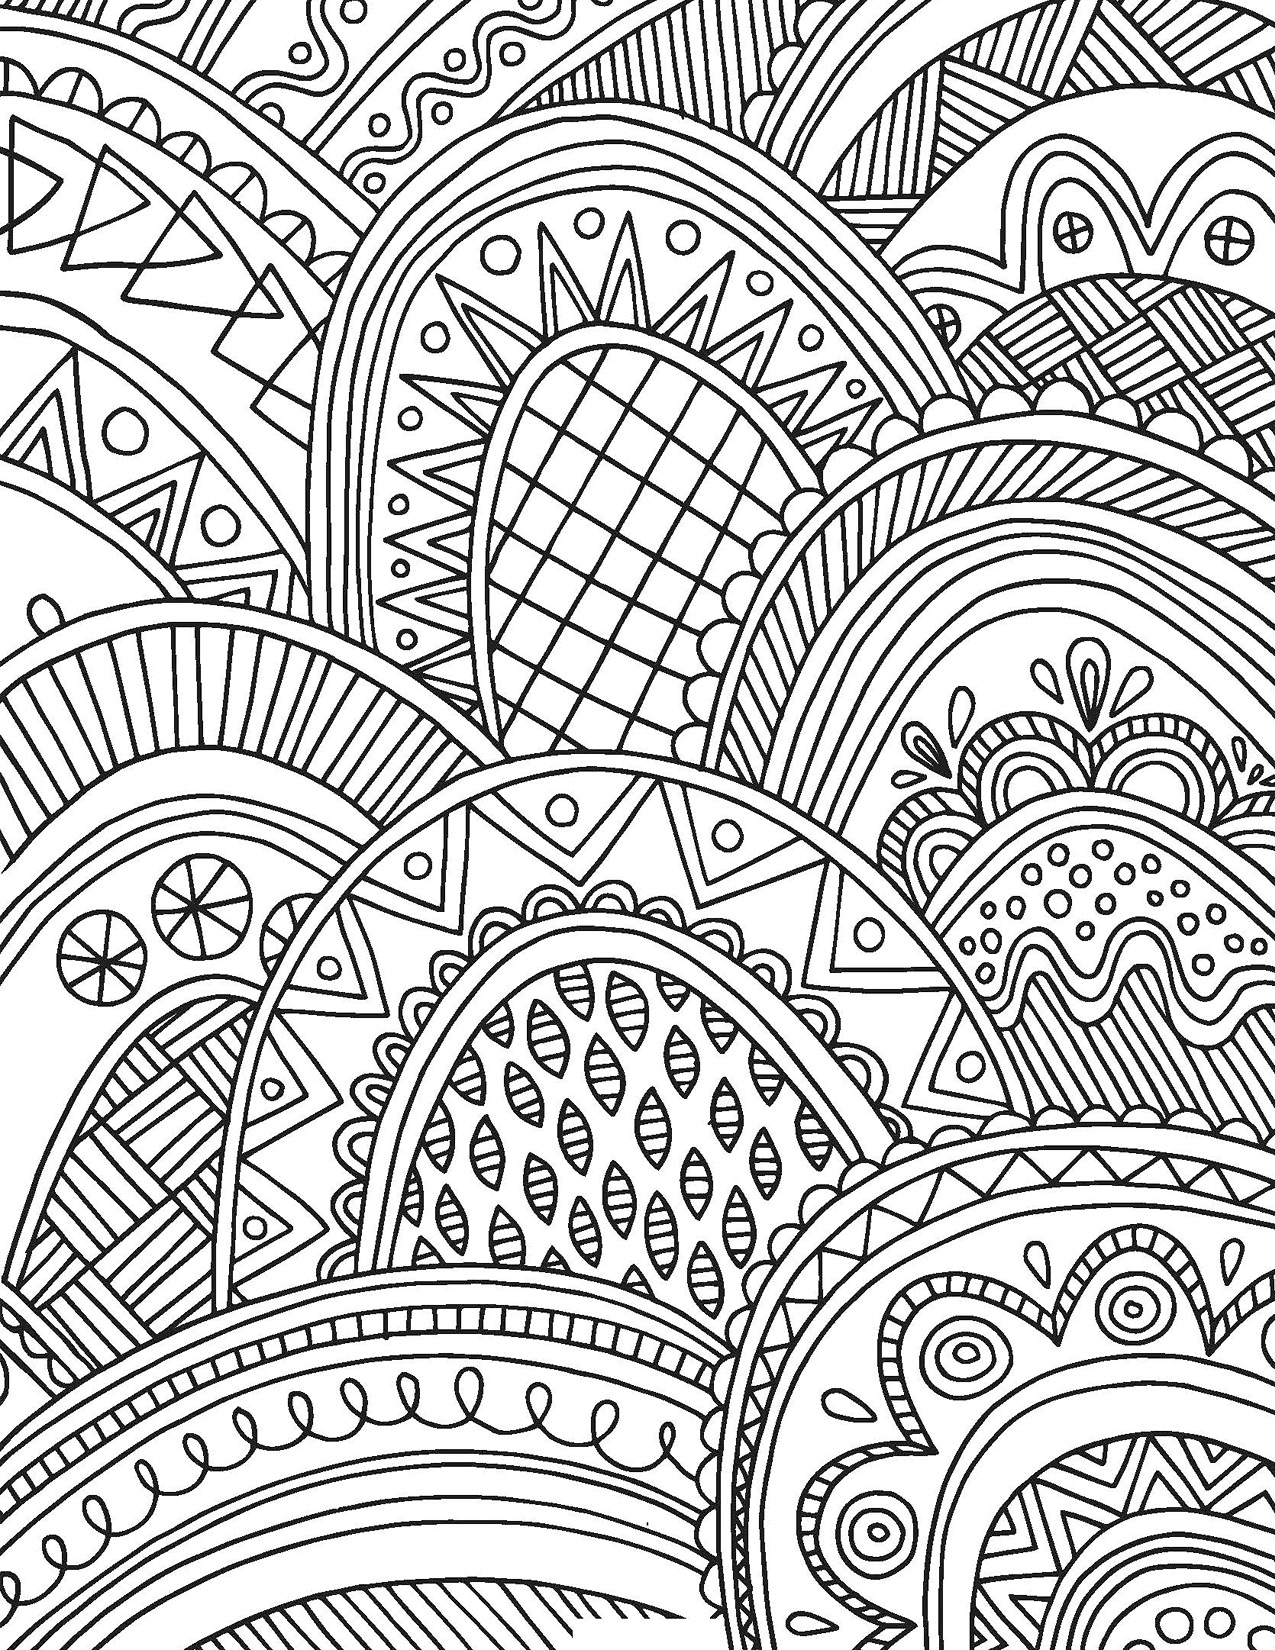 Colouring In Fun For Easter